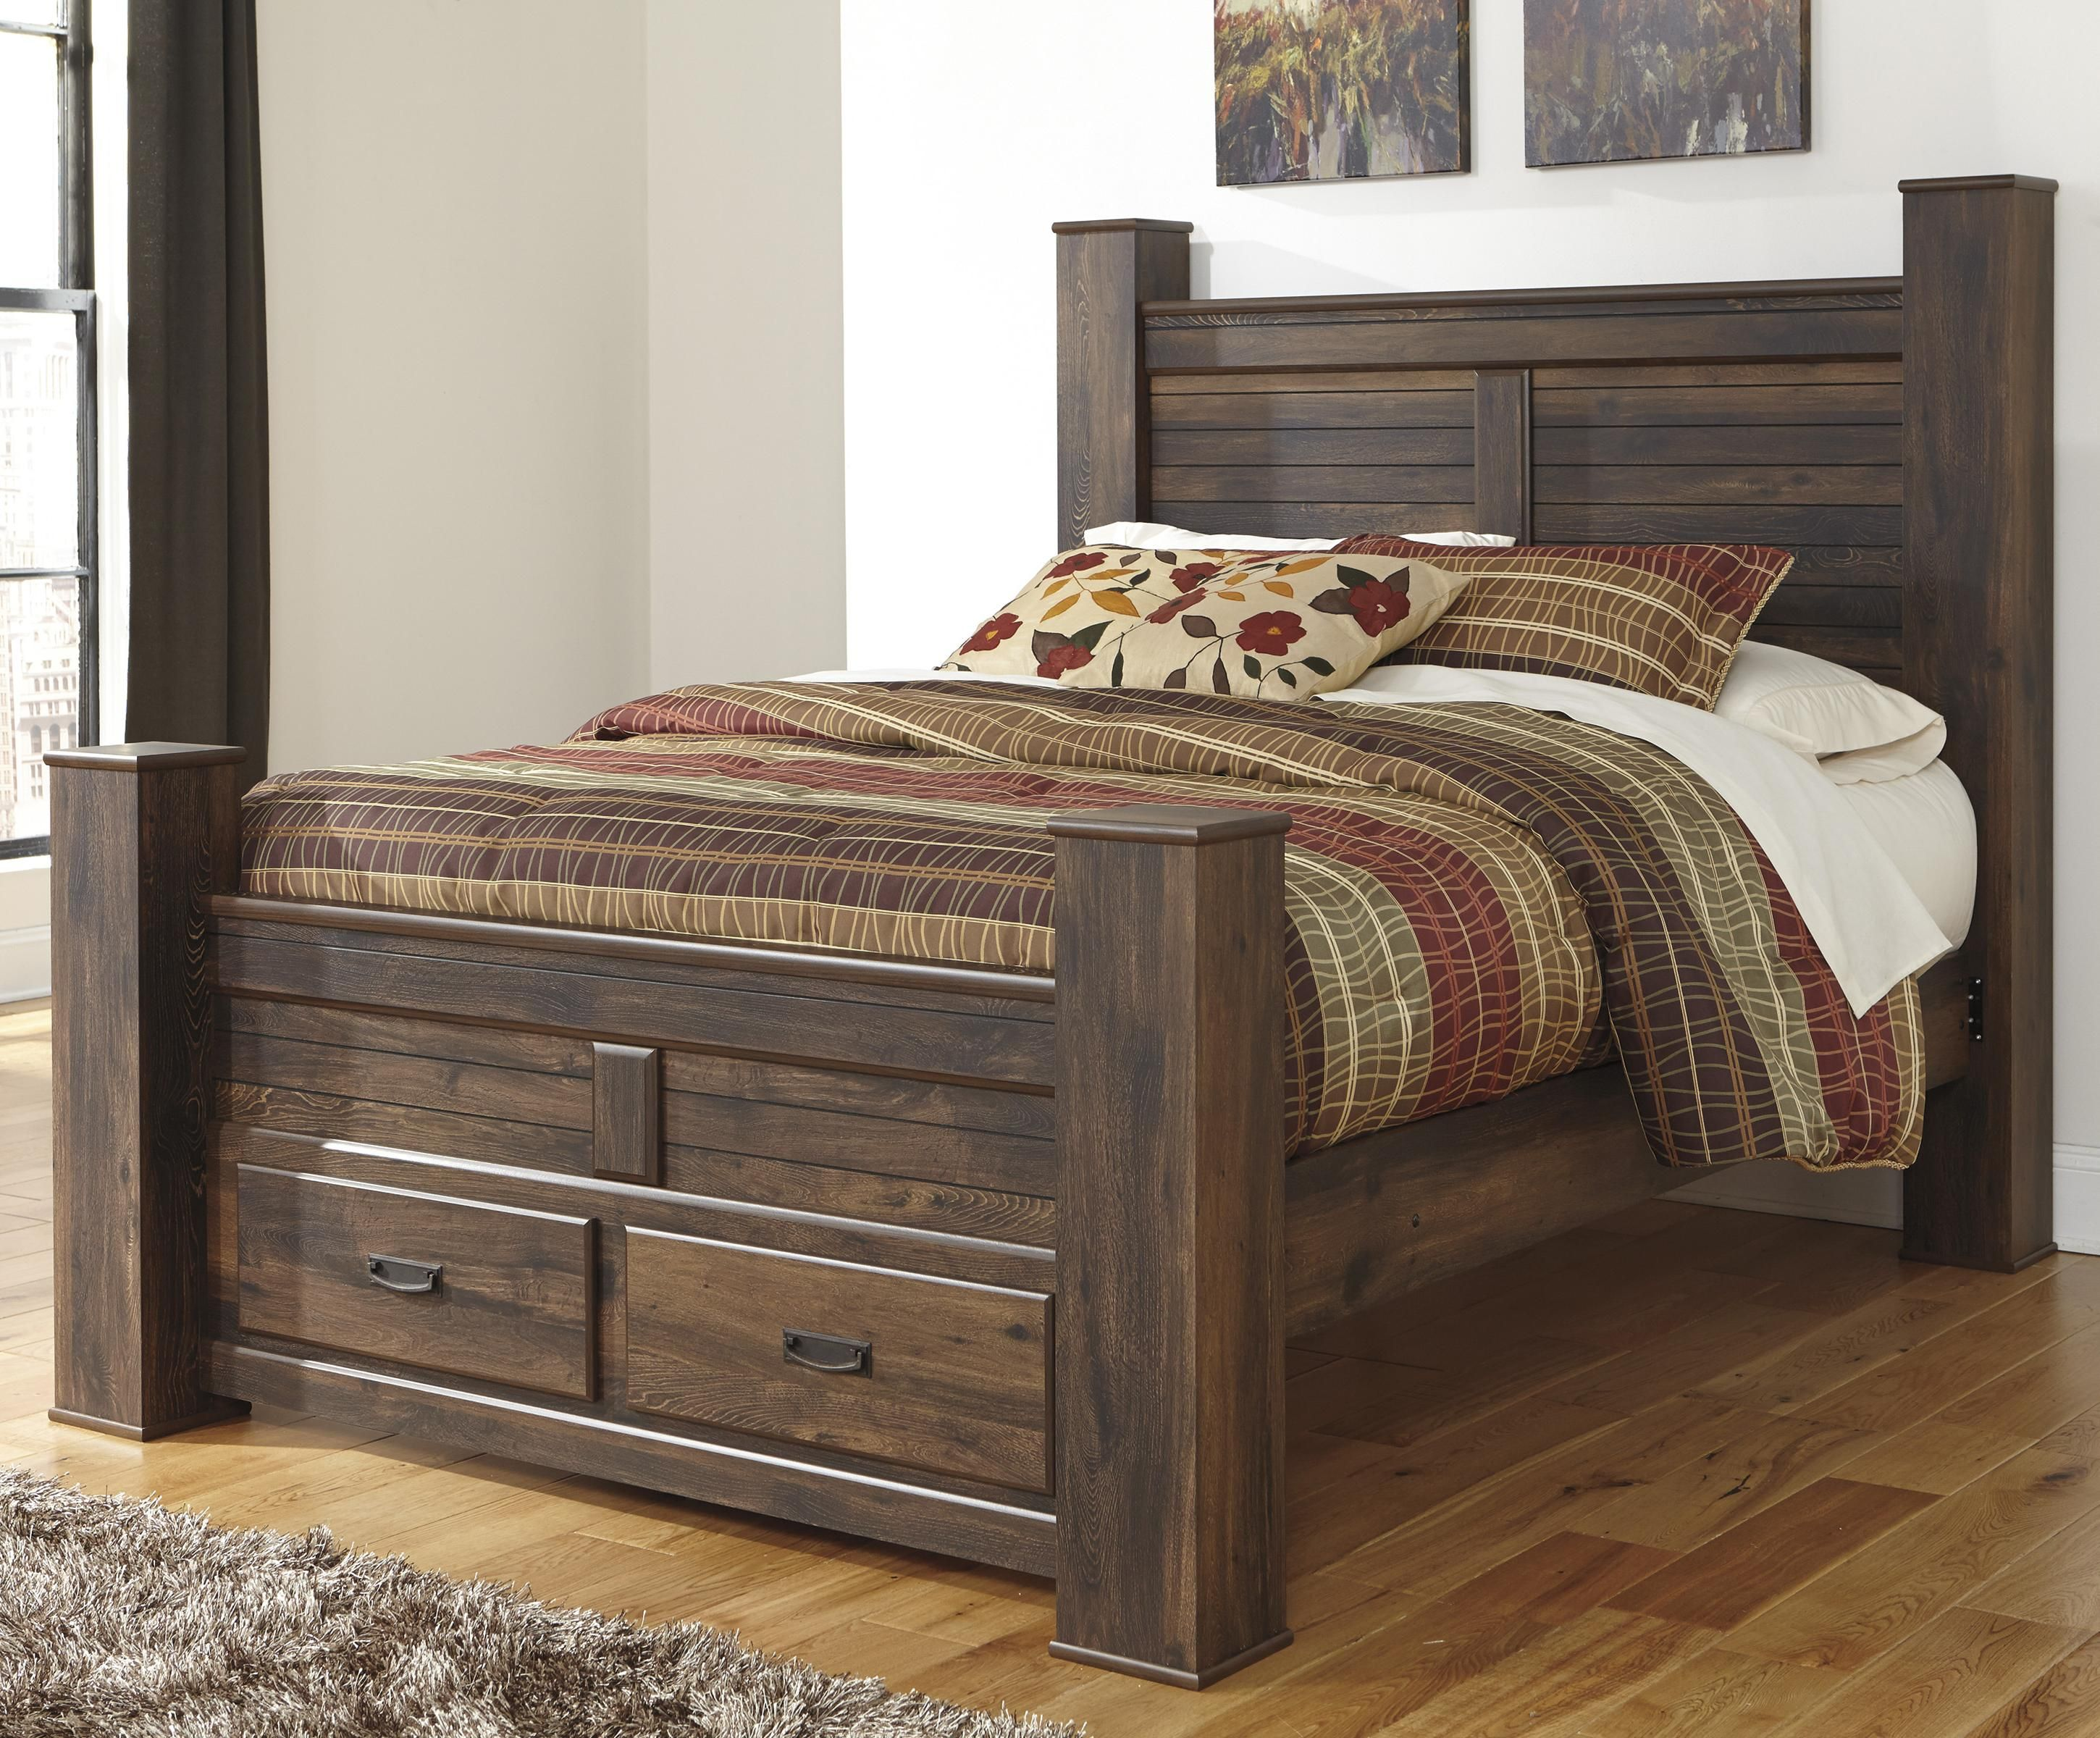 Queen Poster Bed with Storage | carpinteria | Pinterest | Camas de ...